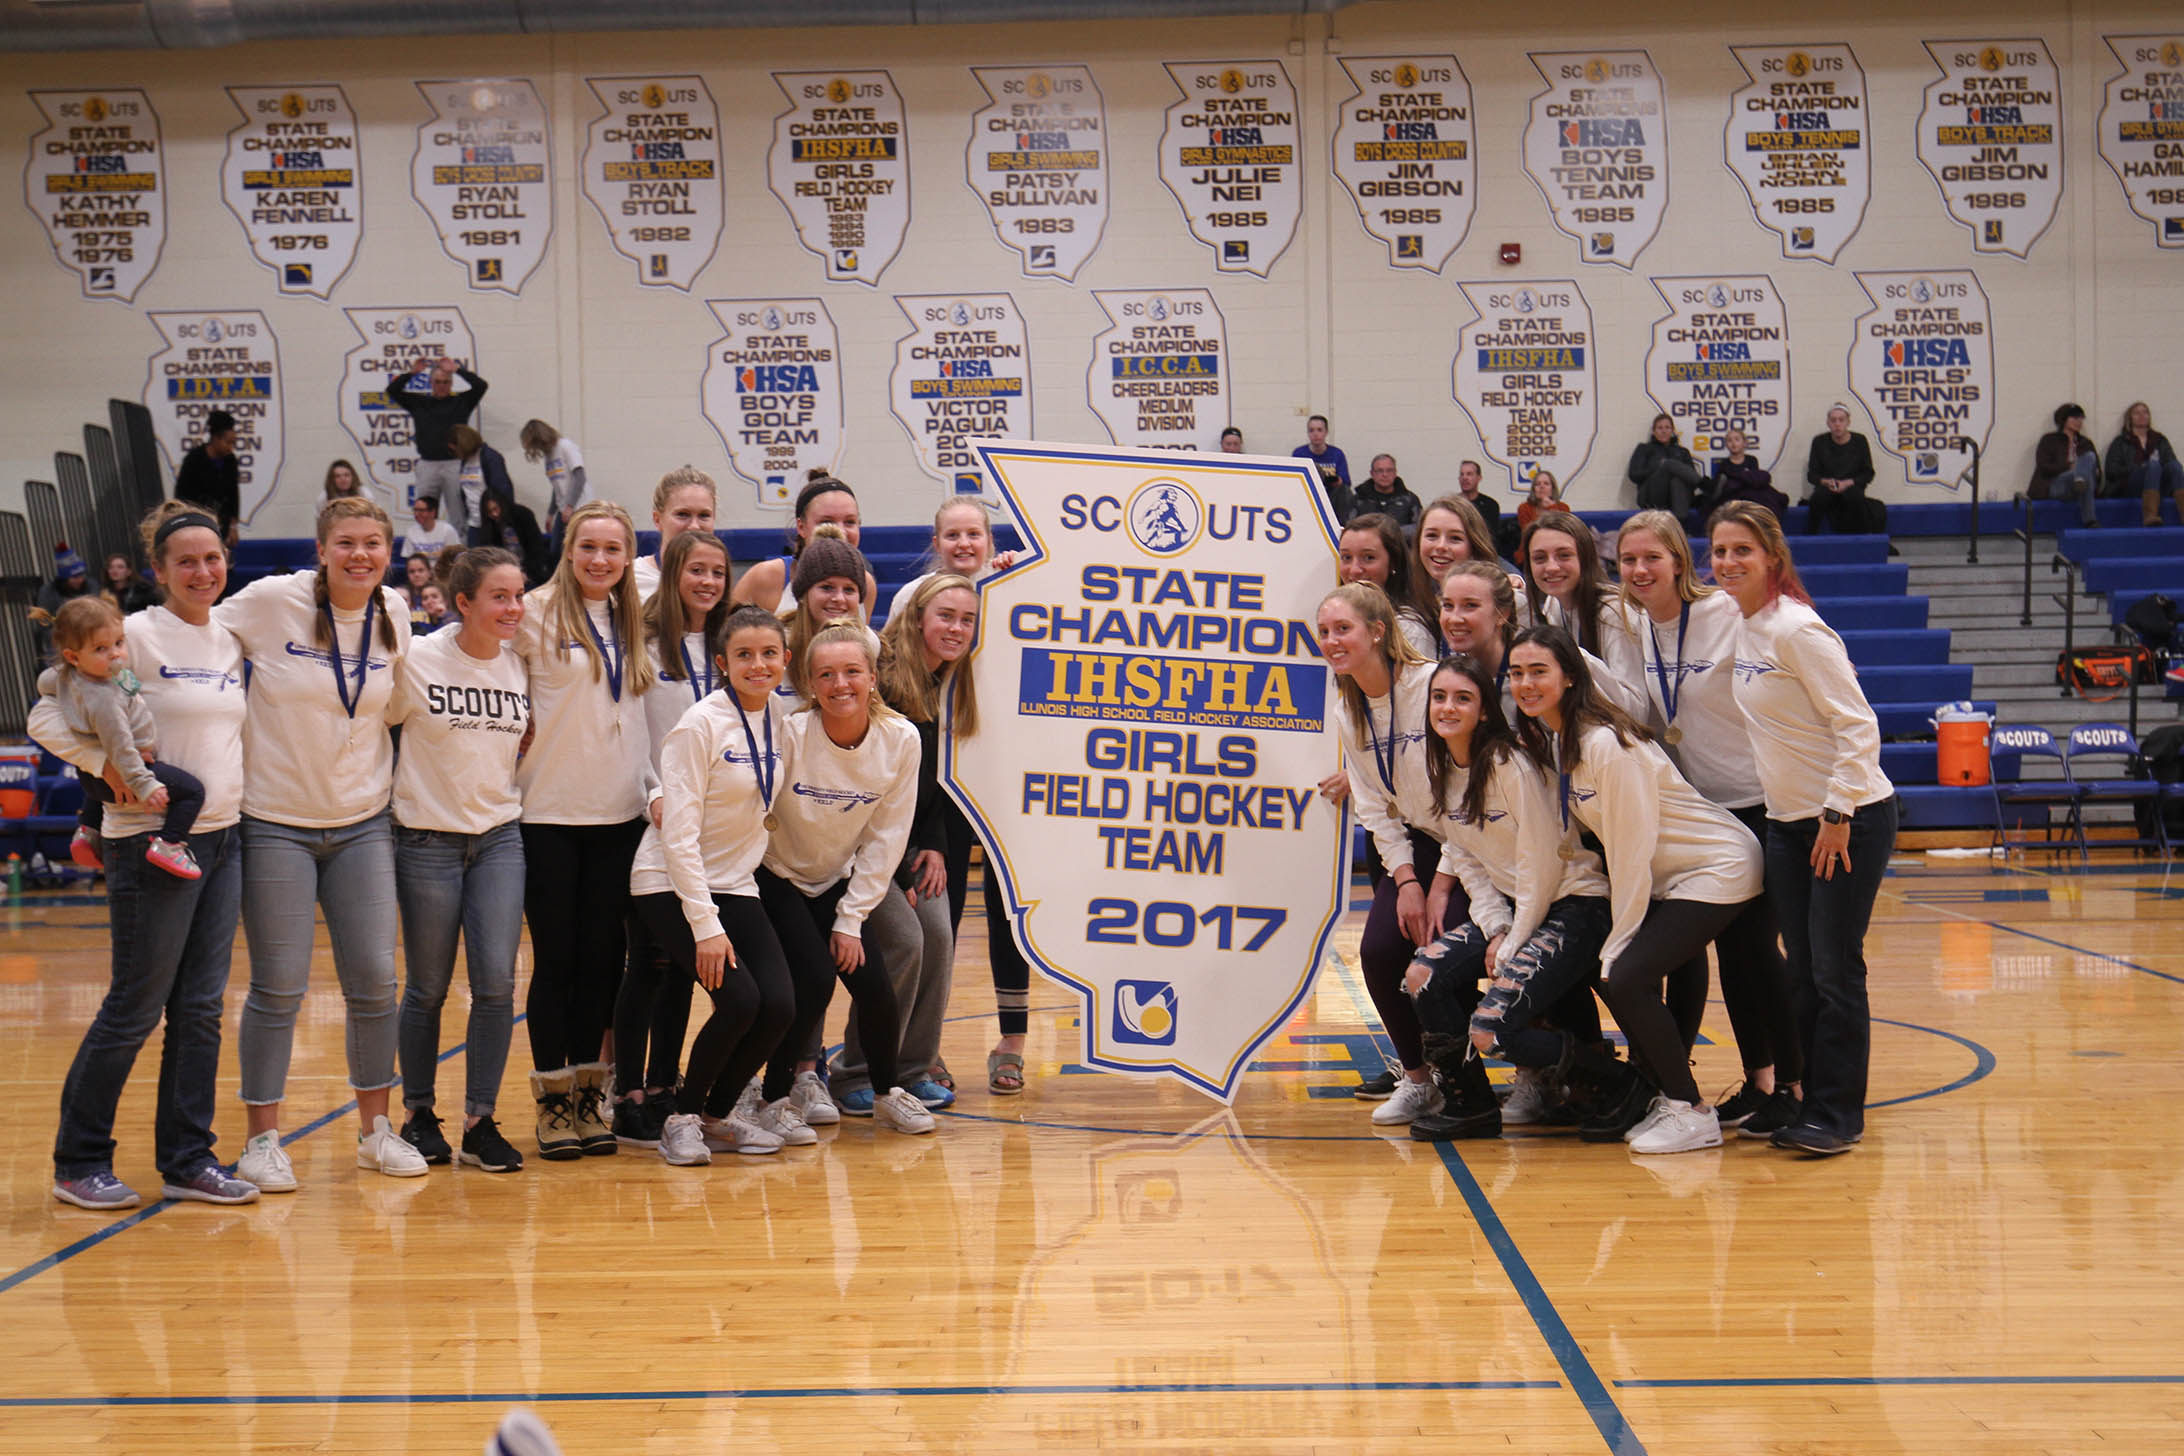 State Champion Girls Field Hockey receive state board at girl's basketball game on December 14, 2017